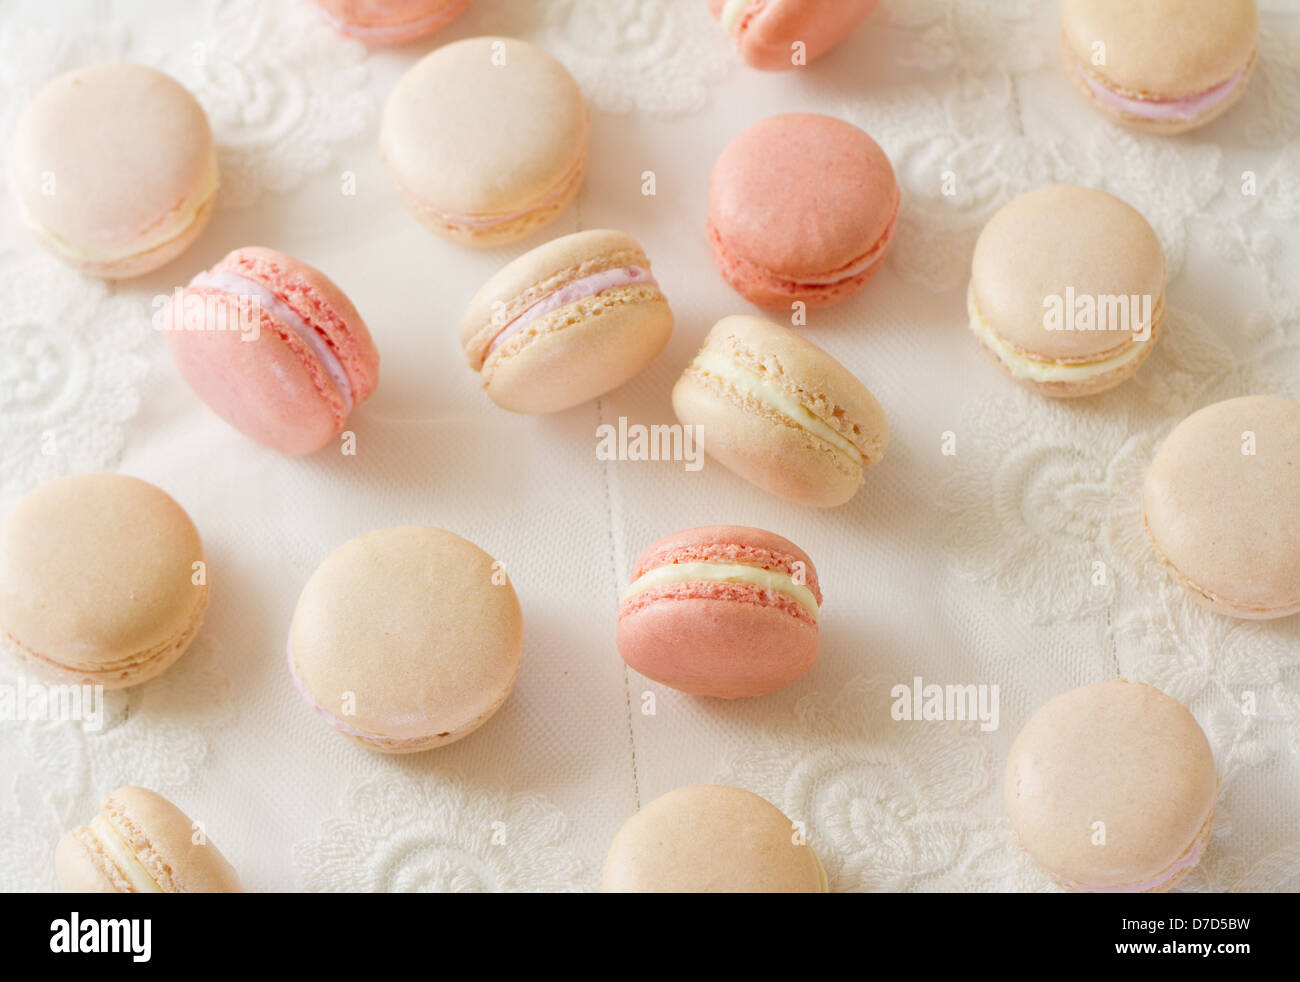 Assortment of French almond macarons on white wood, part of a series. - Stock Image